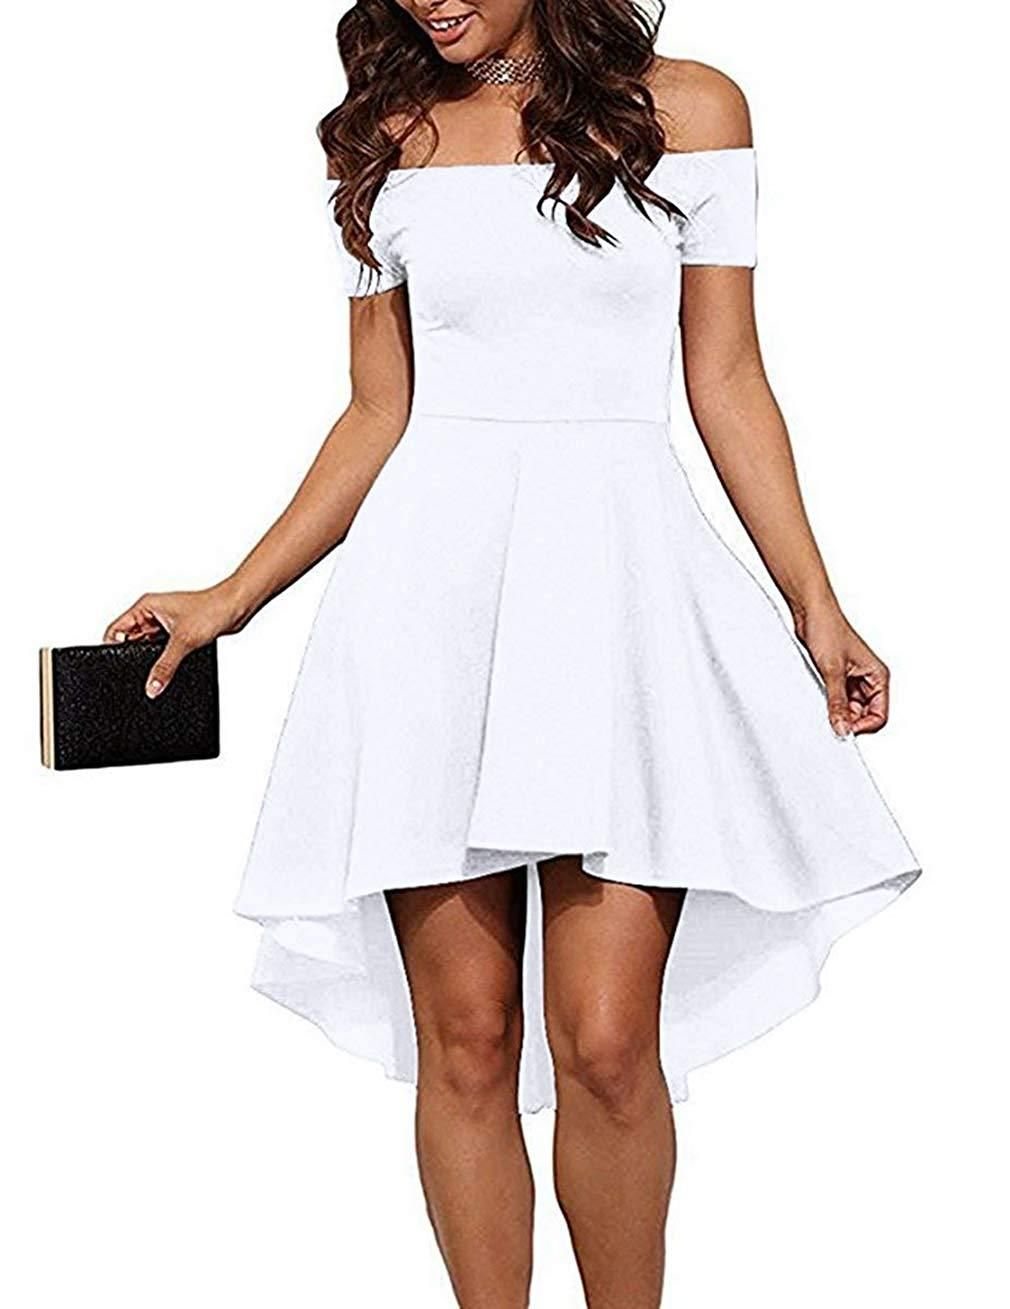 504dae55afc5 Sarin Mathews Womens Off The Shoulder Short Sleeve High Low Cocktail Skater  Dress